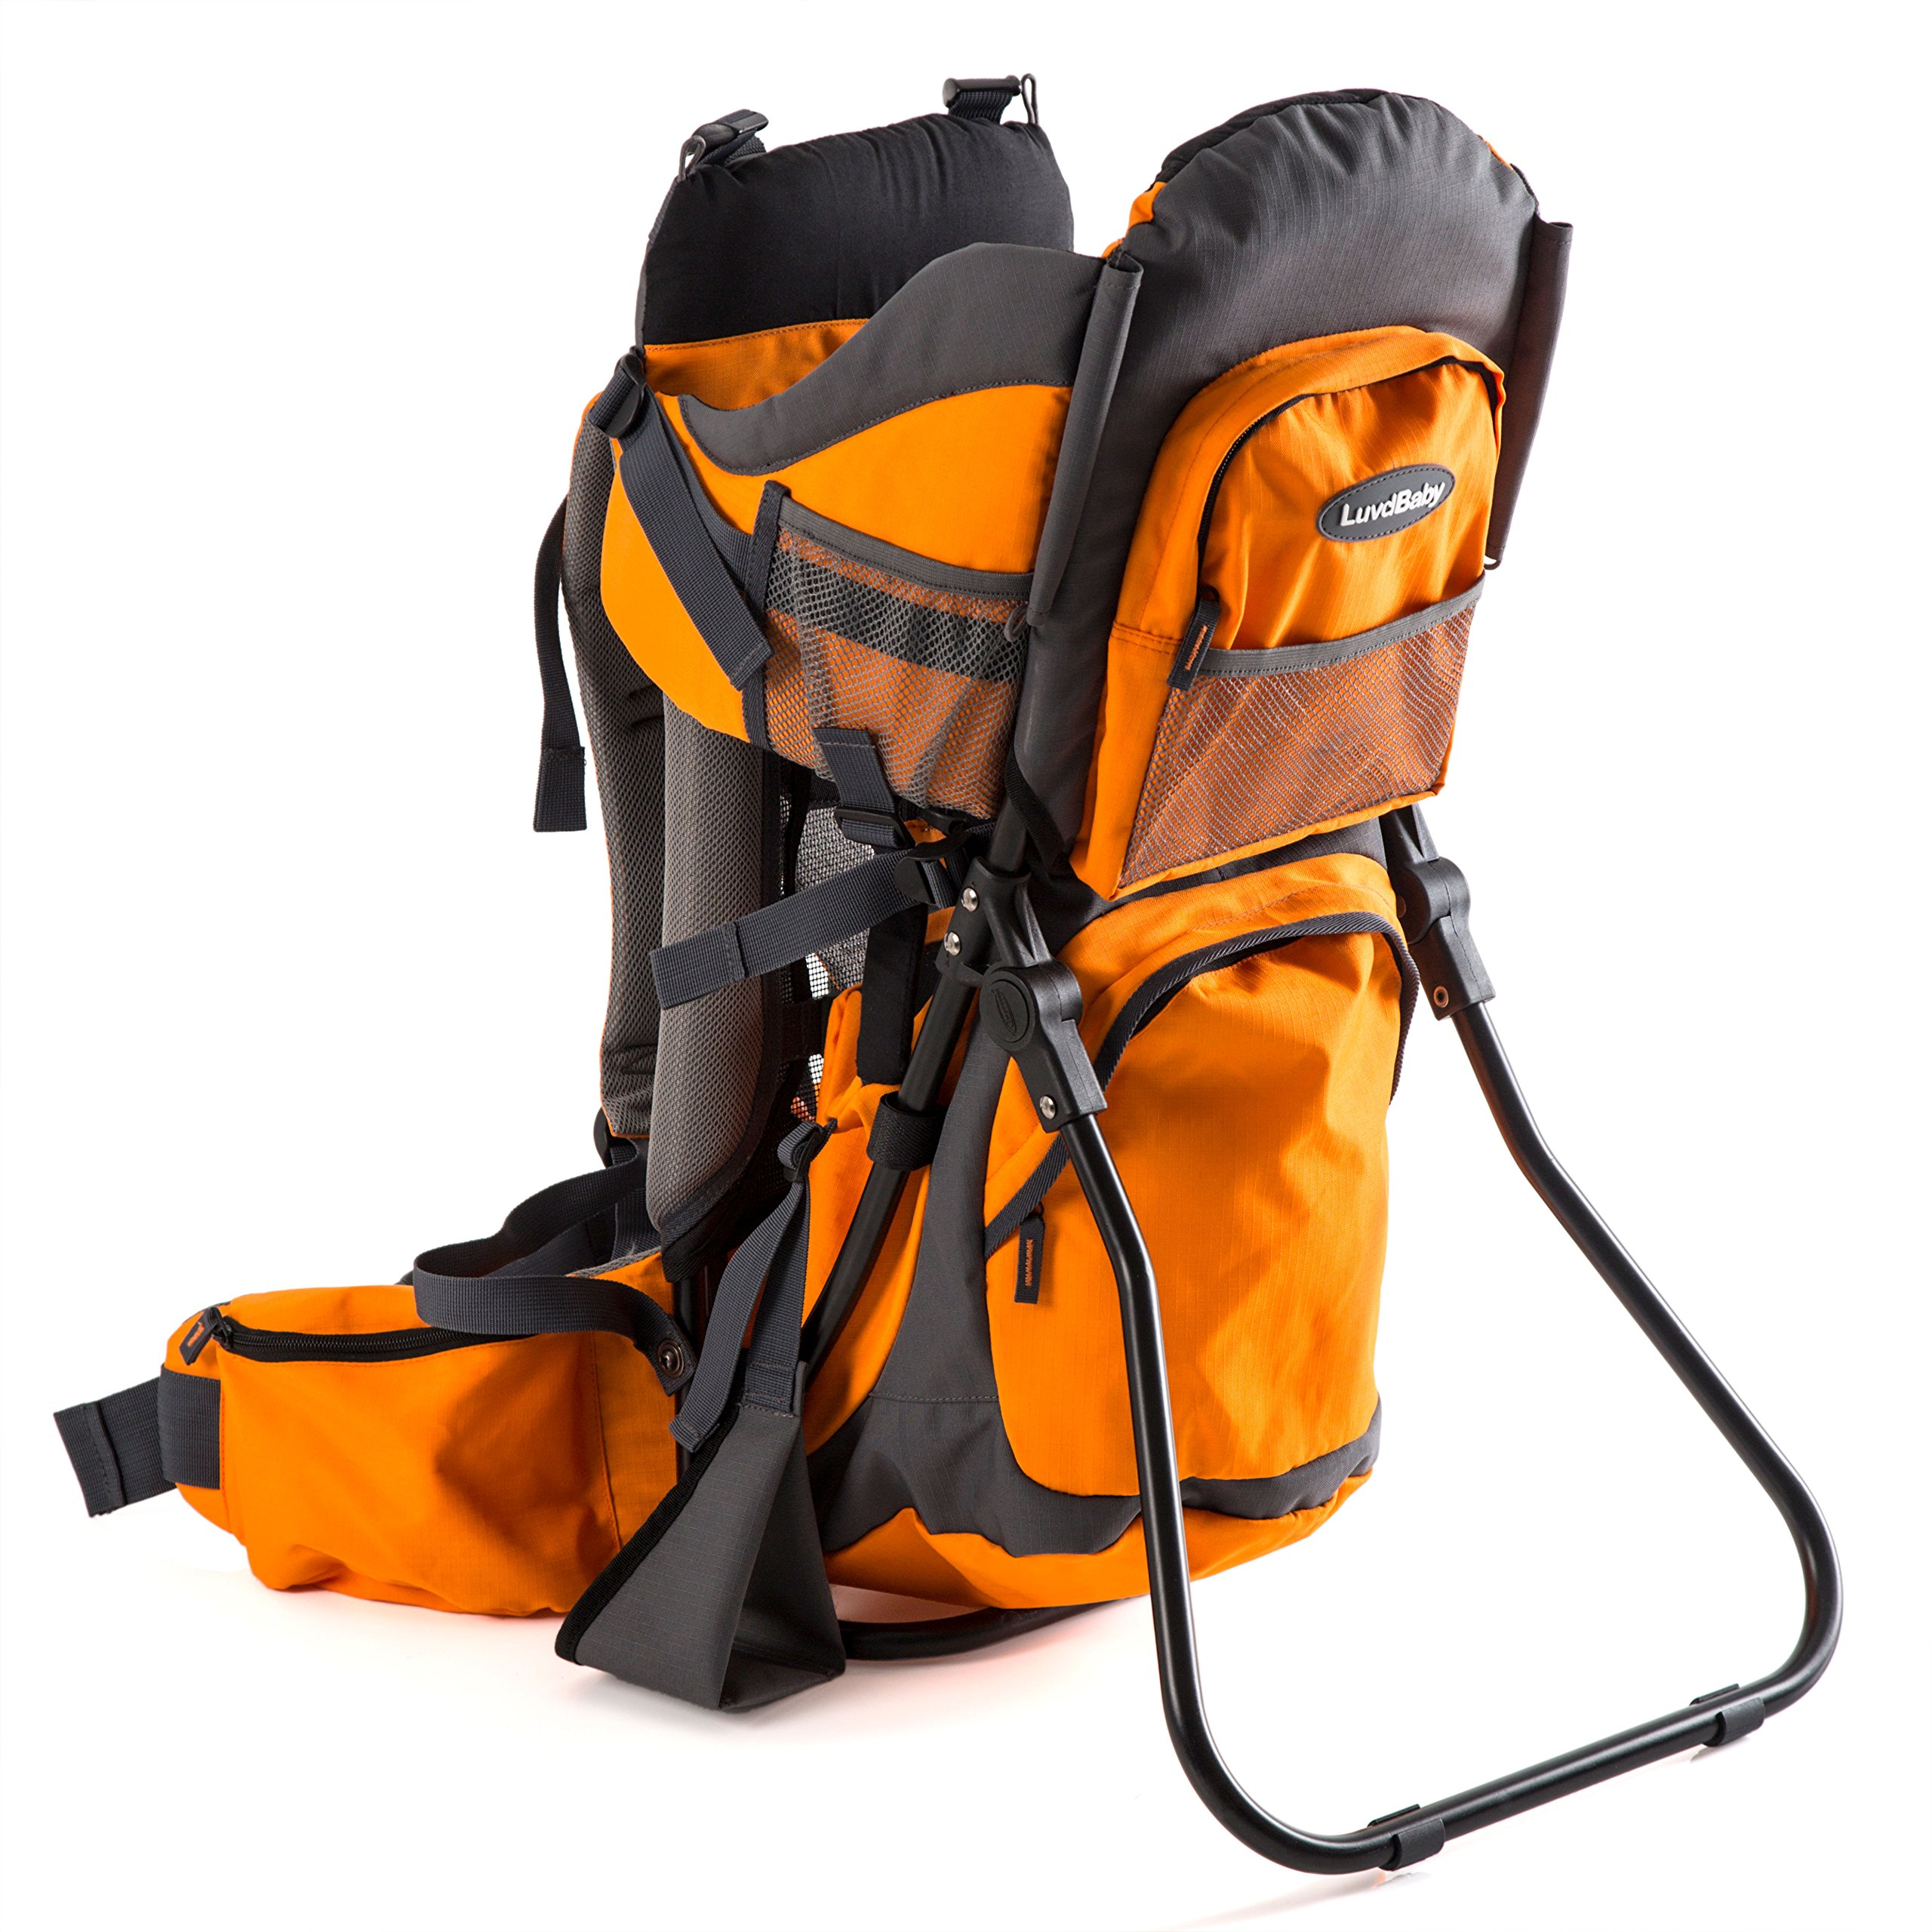 Luvdbaby Premium Backpack Carrier Hiking